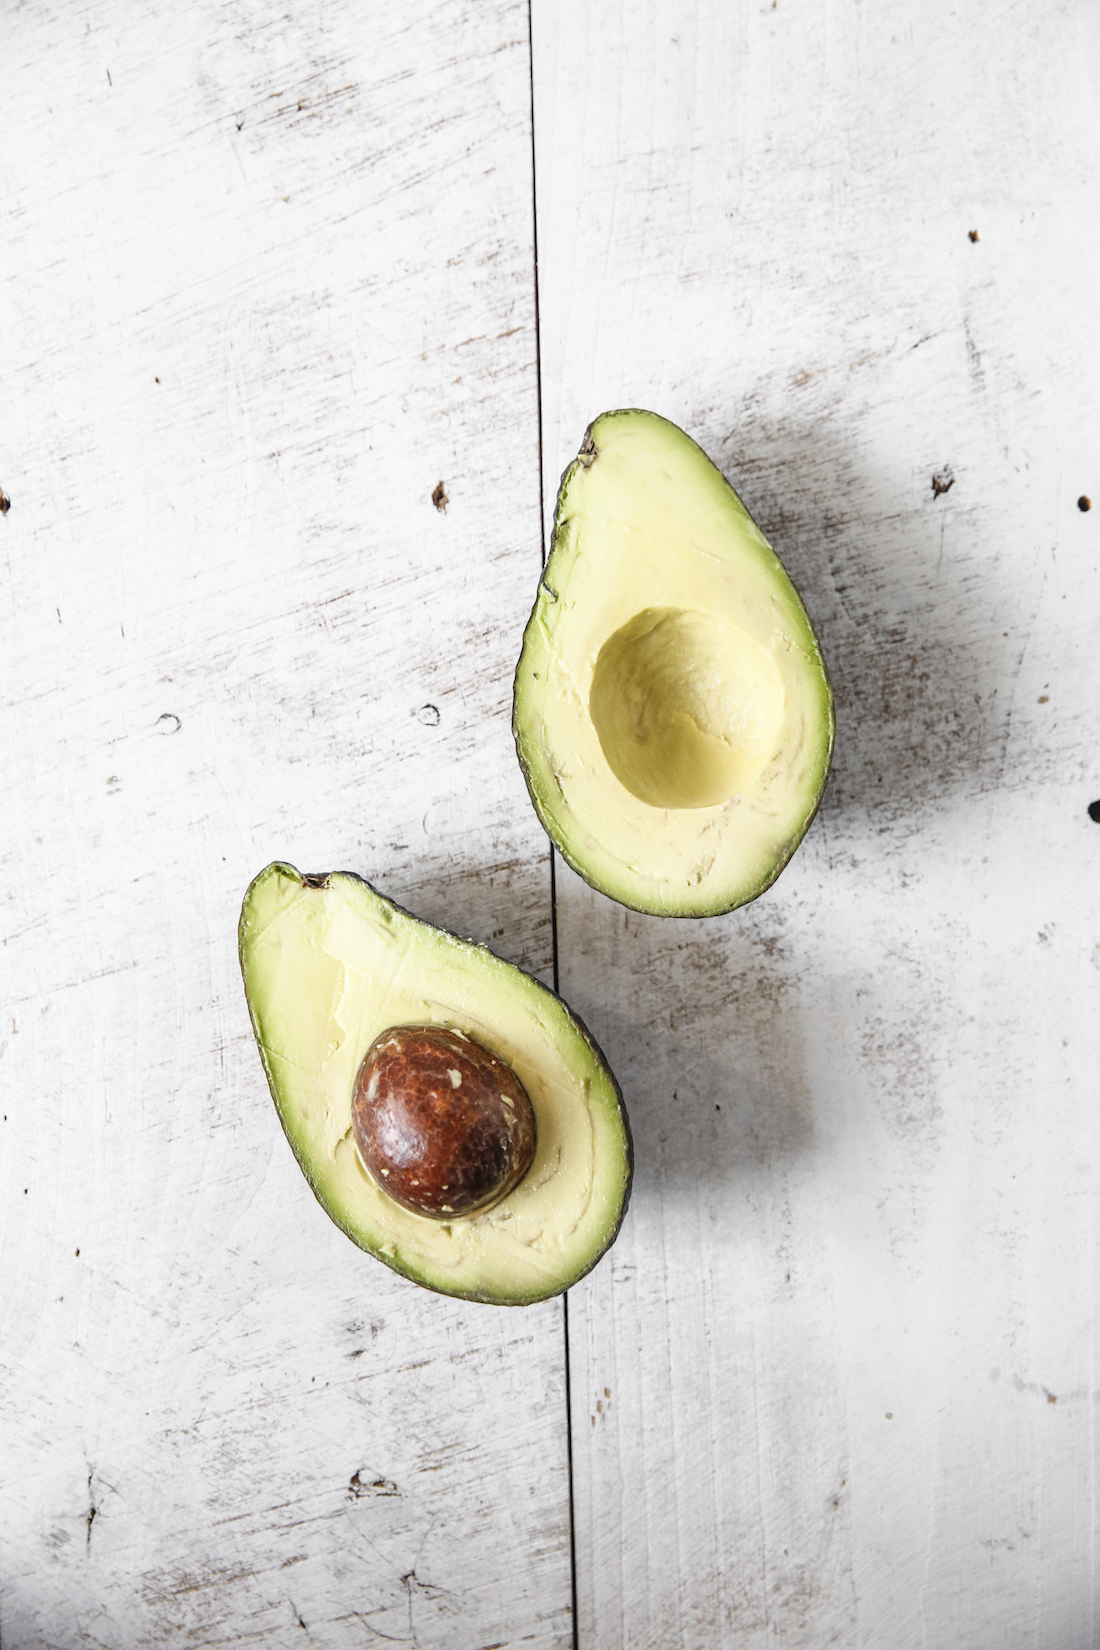 The king of healthy fats! In salads, in smoothies, on toast, or just with a spoon!